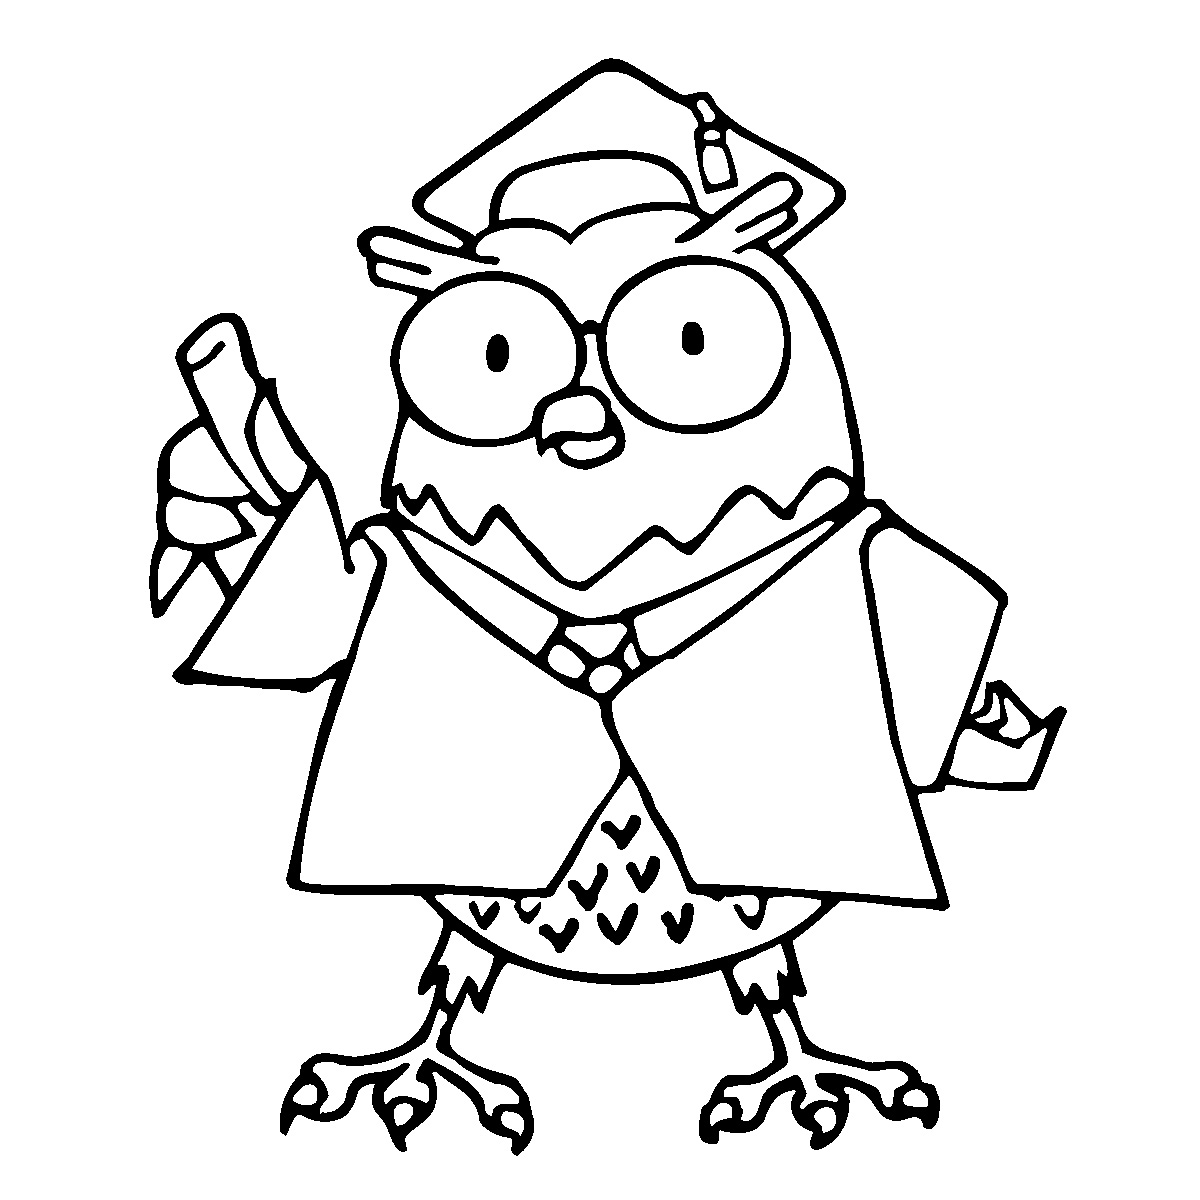 Owl coloring pages free - Owl Coloring Pages